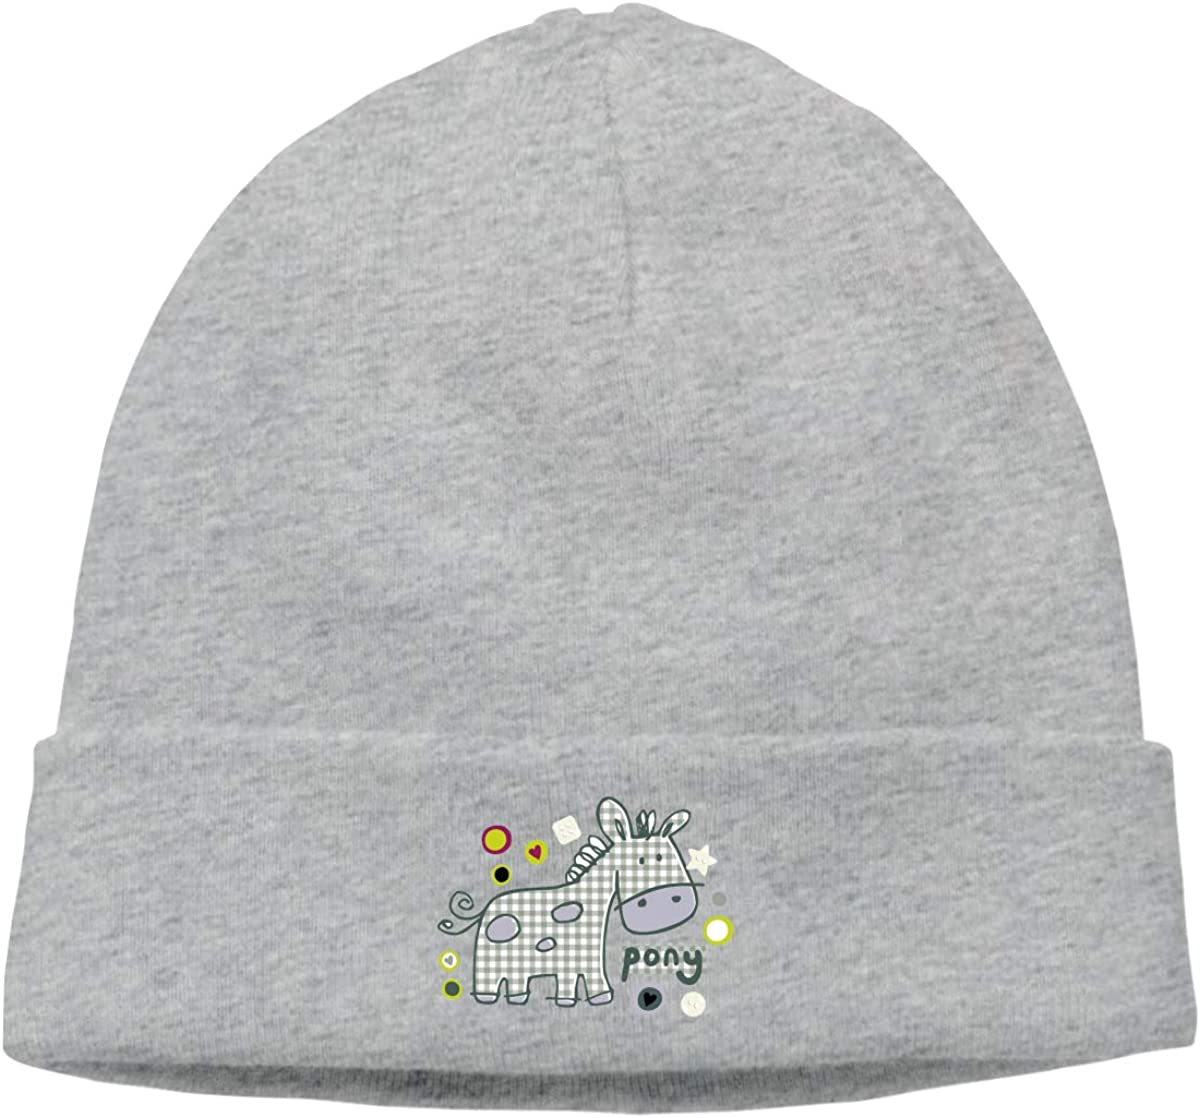 Nskngr A Lovely Mule Men Women Warm Skull Cap